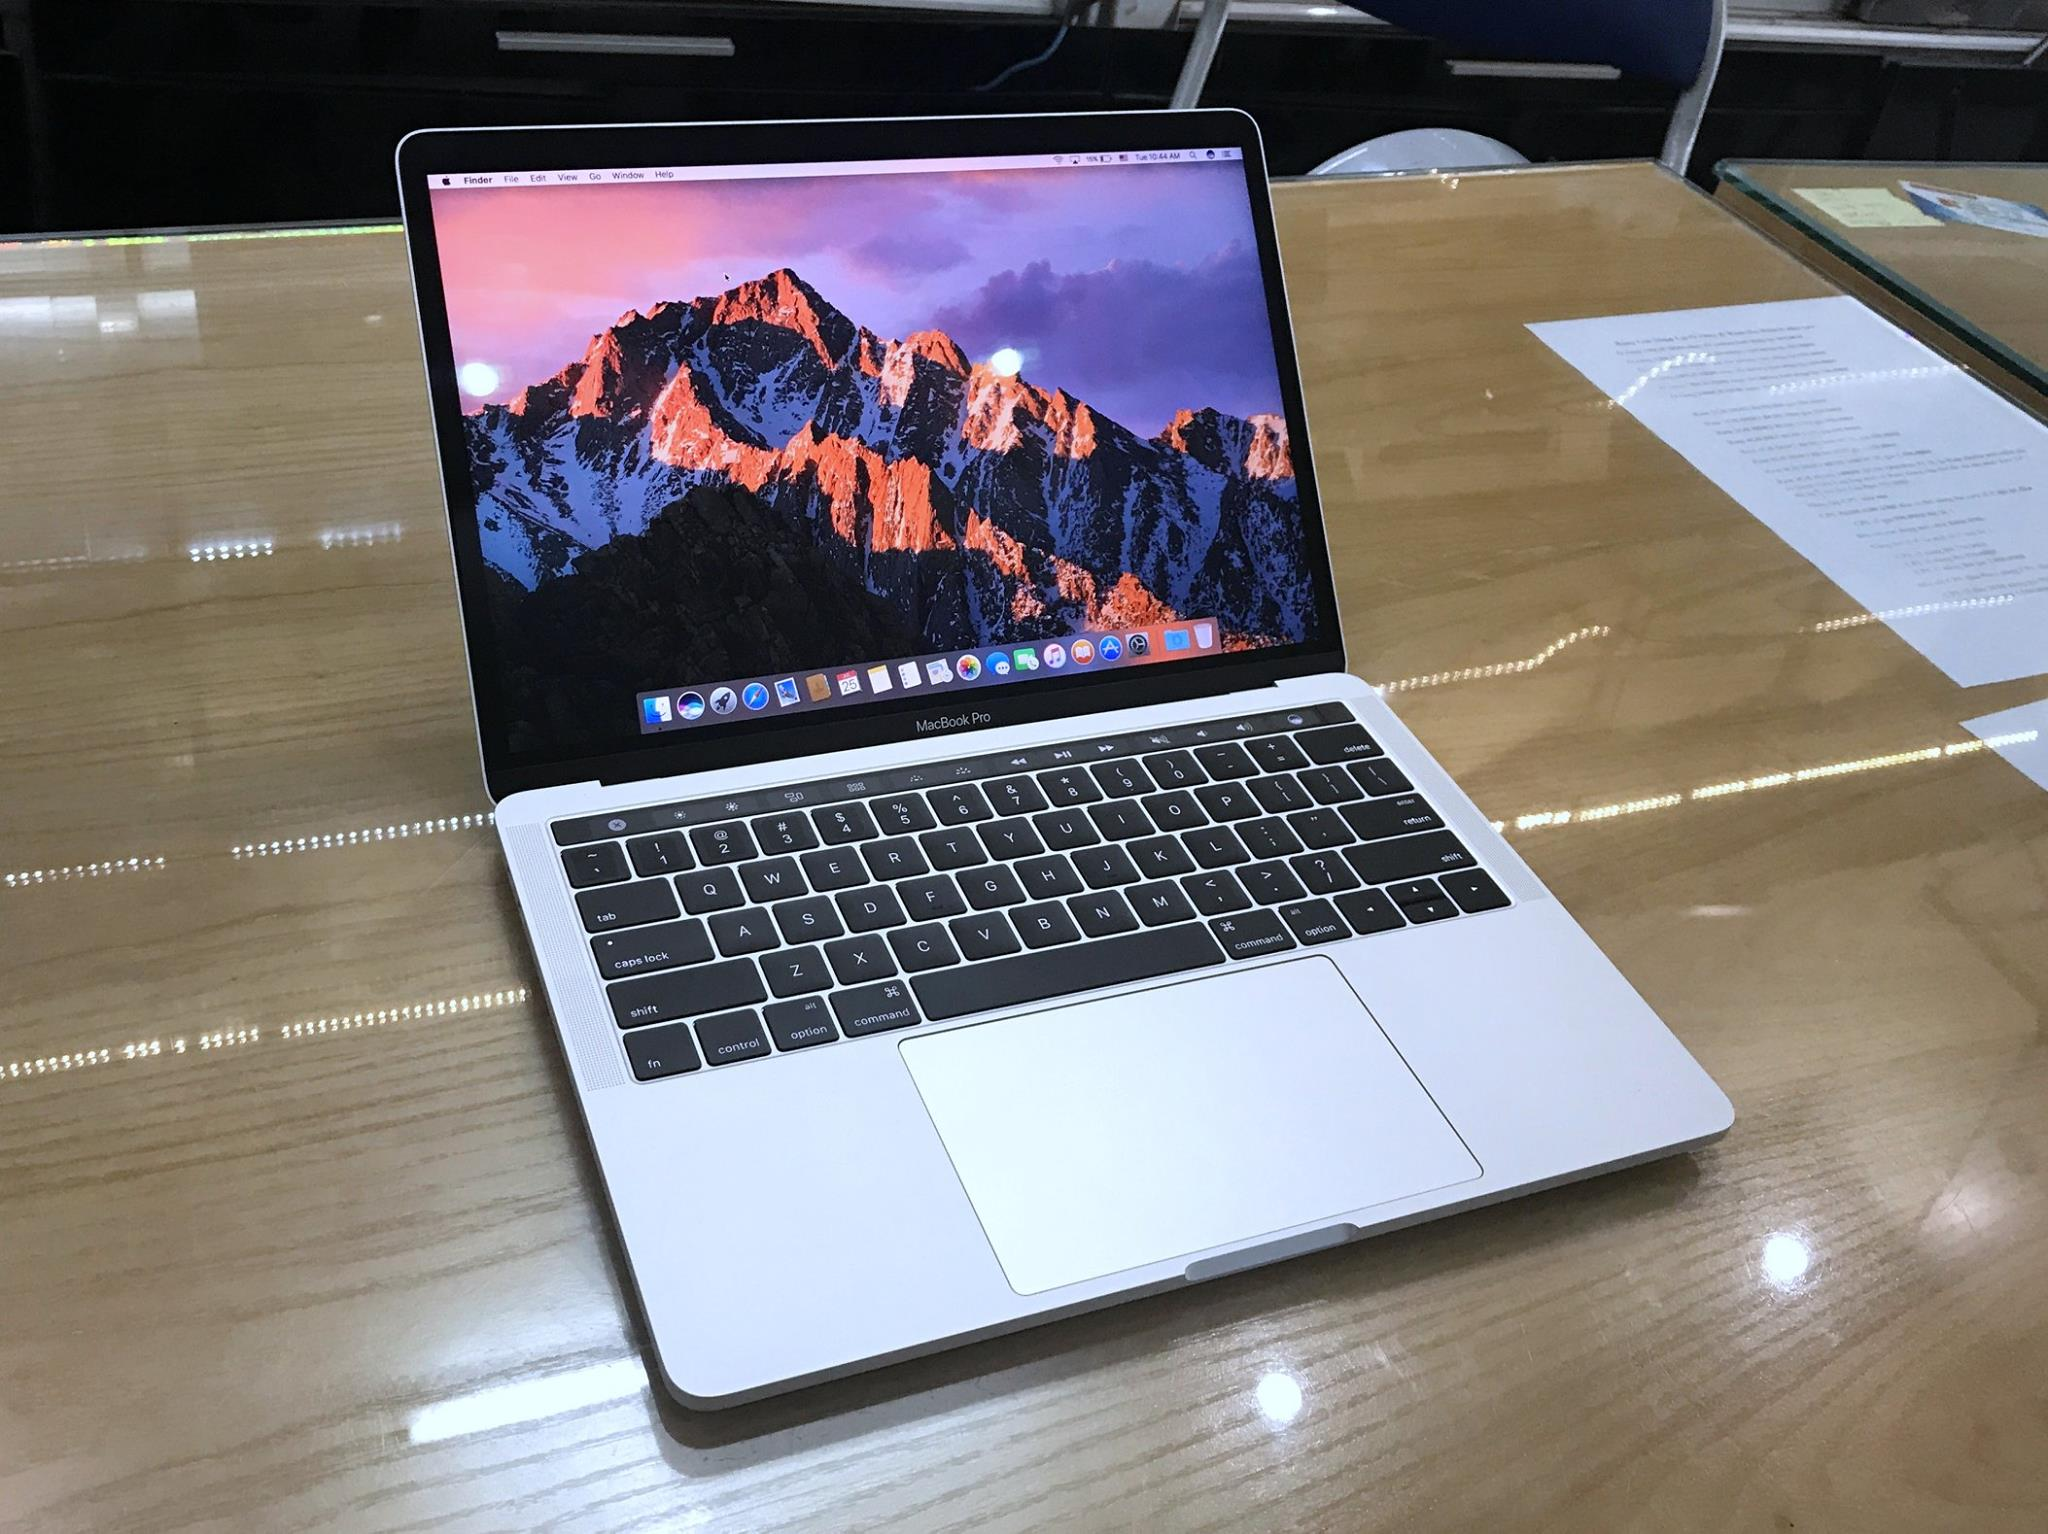 Macbook Pro Retina TOUCH BAR 13 BOT Core i7 3,3Ghz Ram 16GB